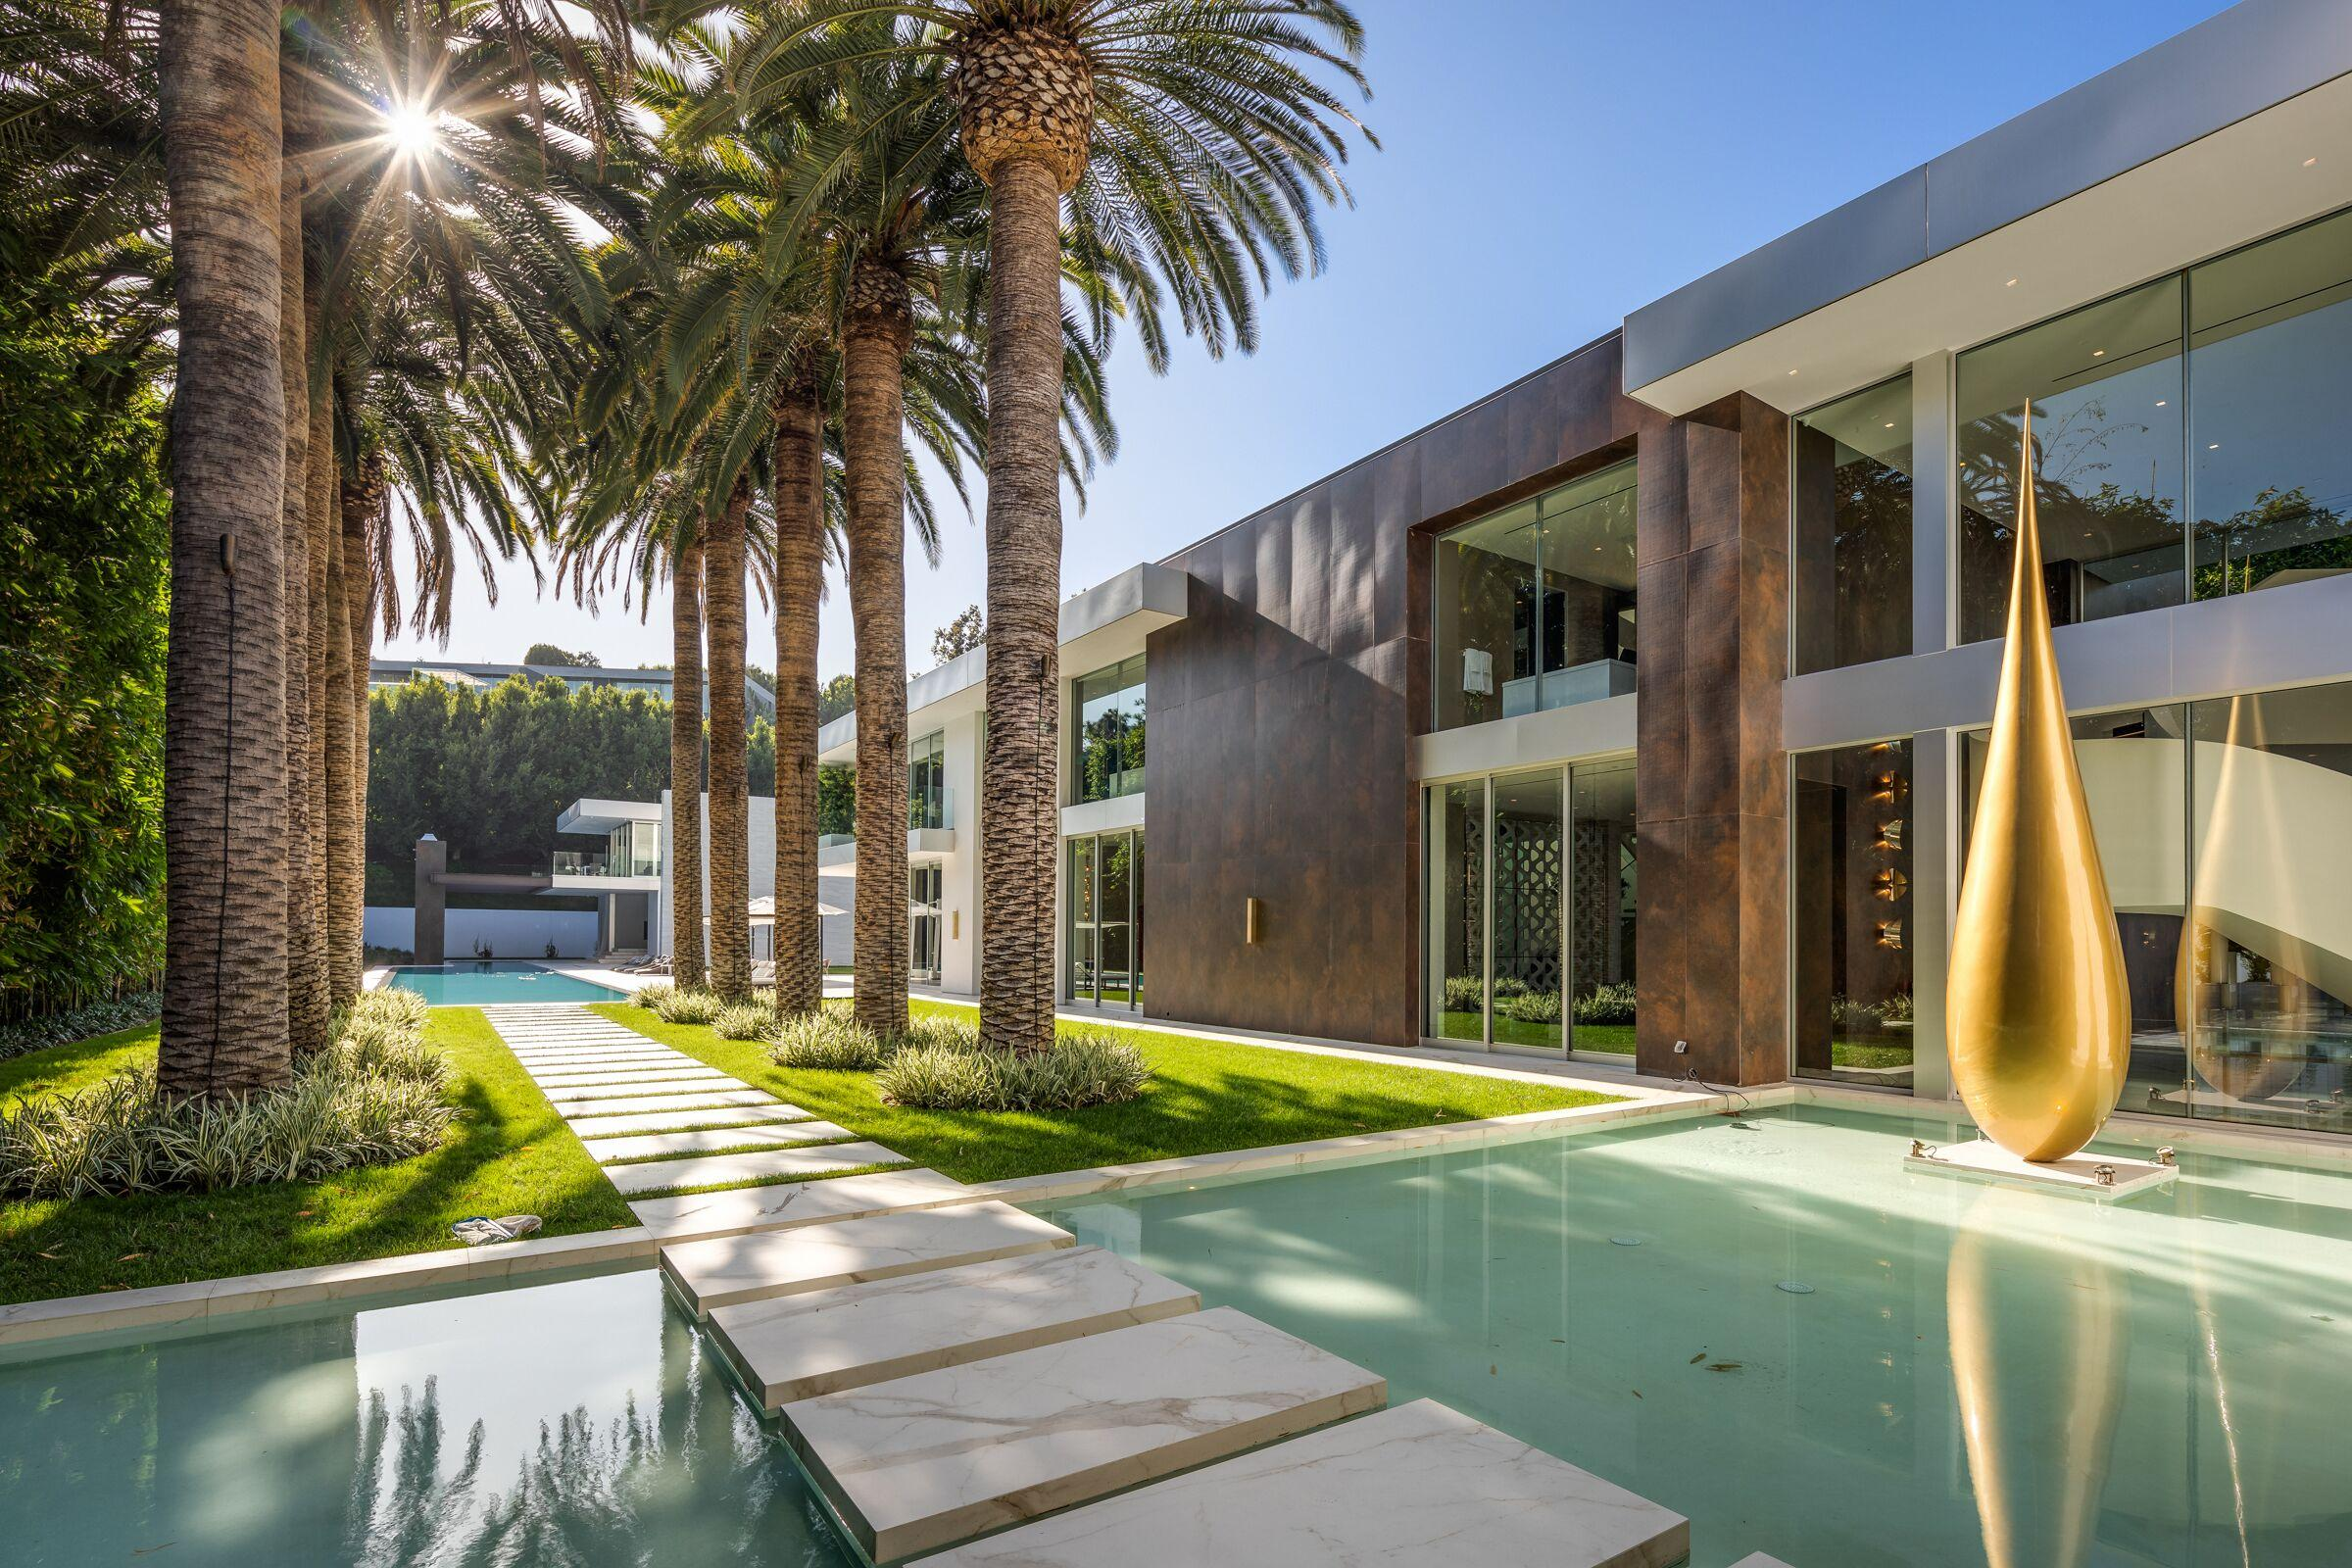 Nile Niami's Bel Air Dream House